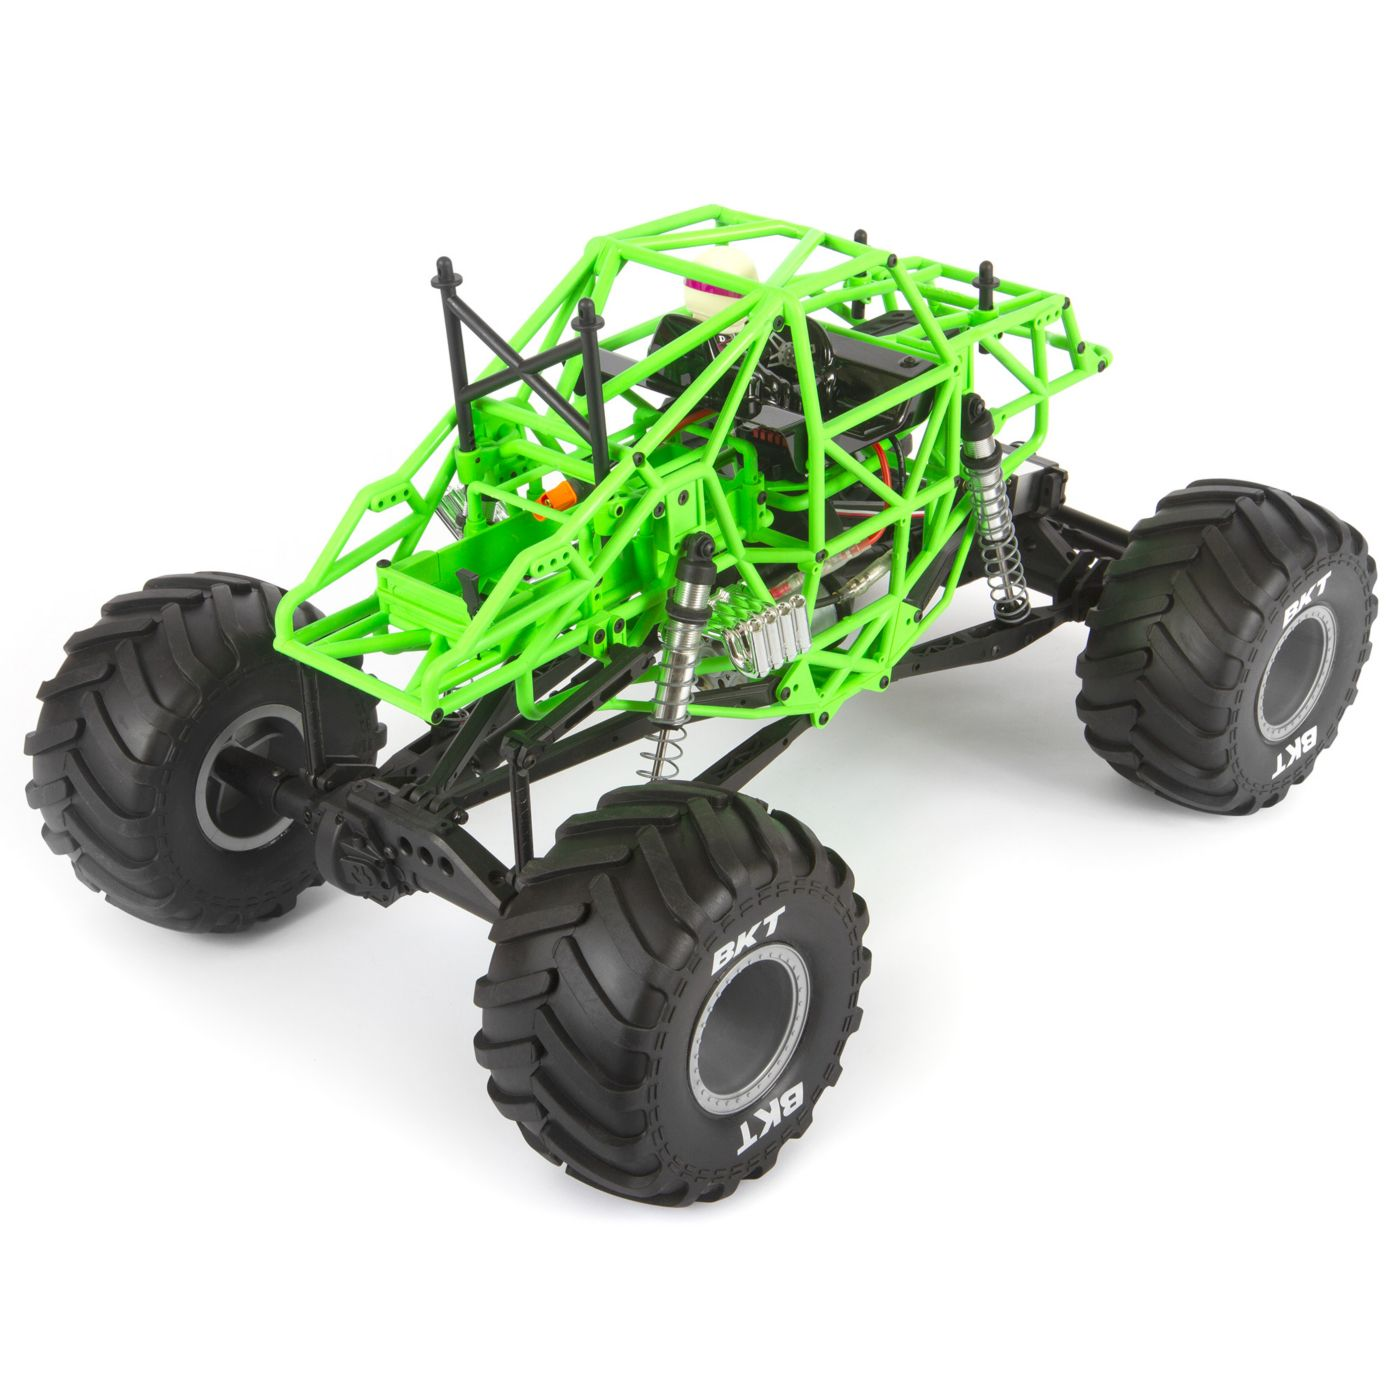 Axial SMT10 Grave Digger RTR Monster Truck - Chassis